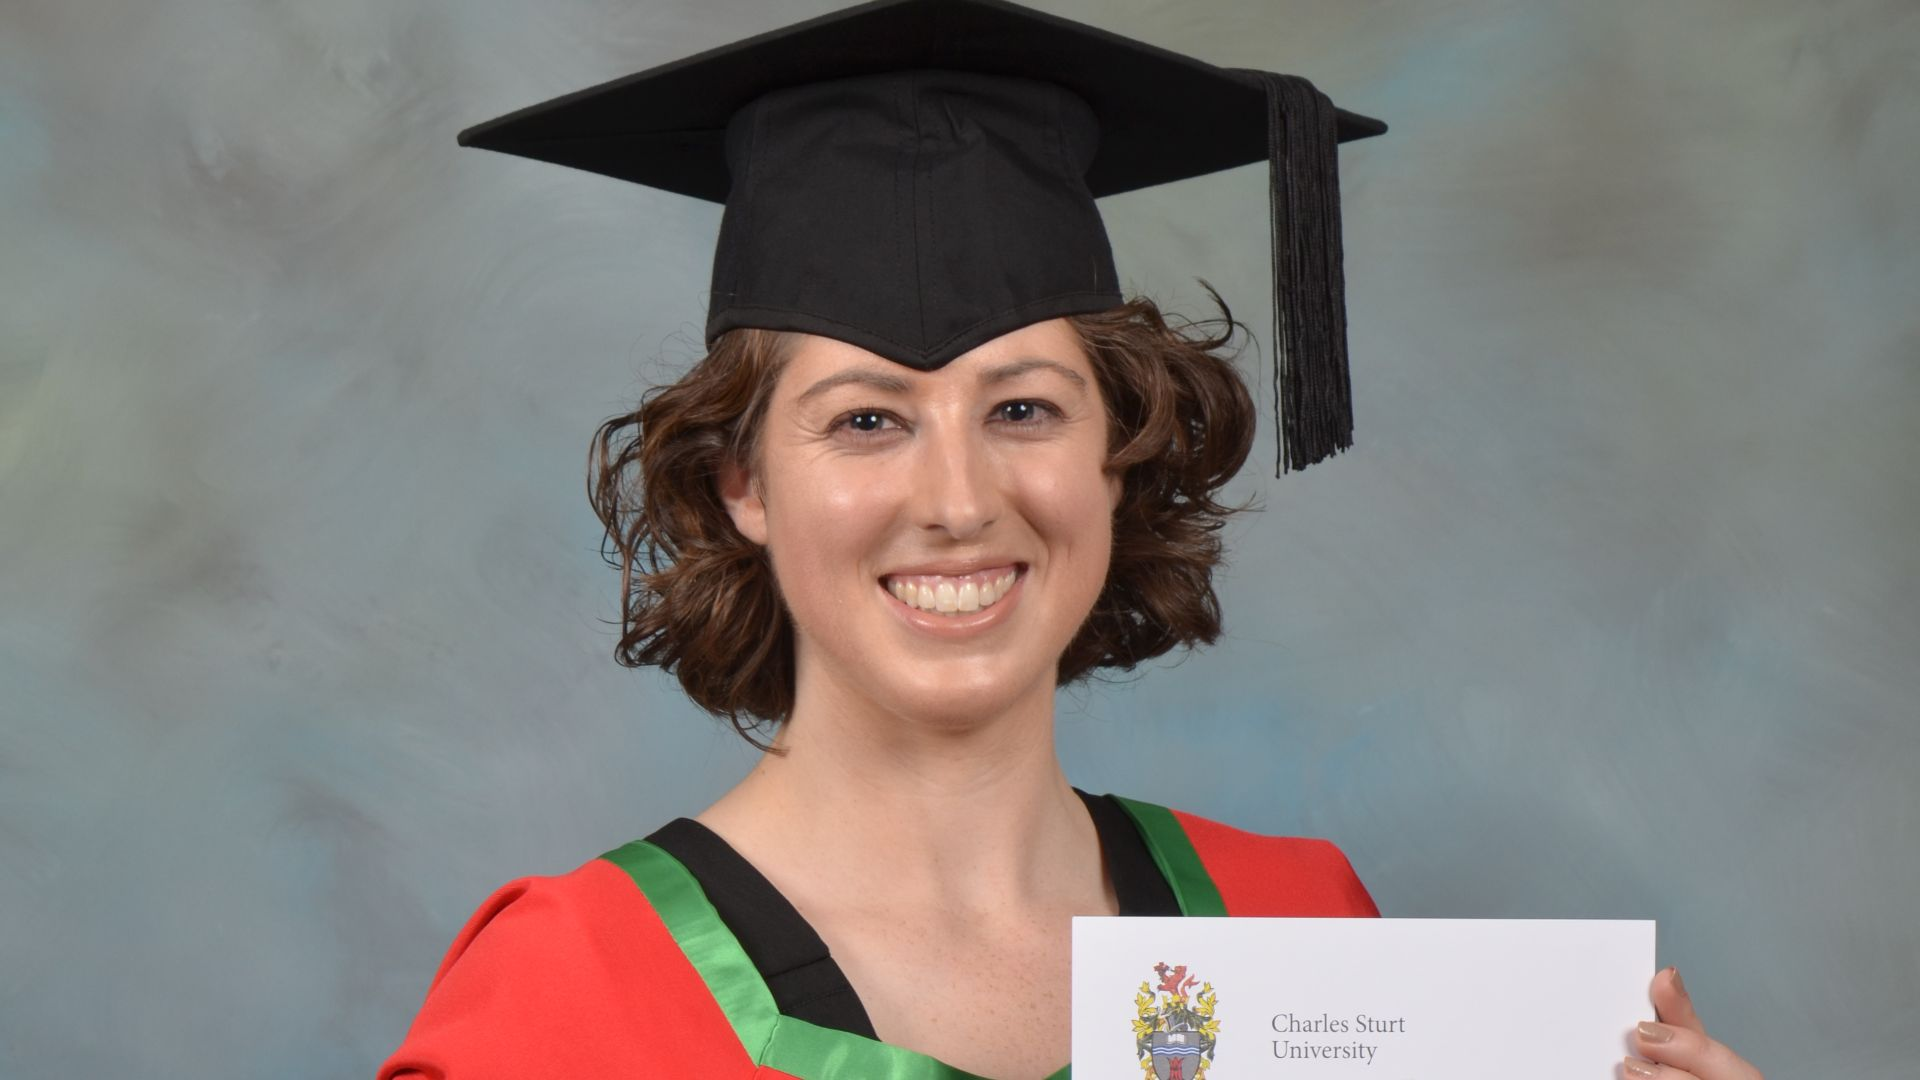 Canberra school teacher finds her voice and earns top postgraduate honour